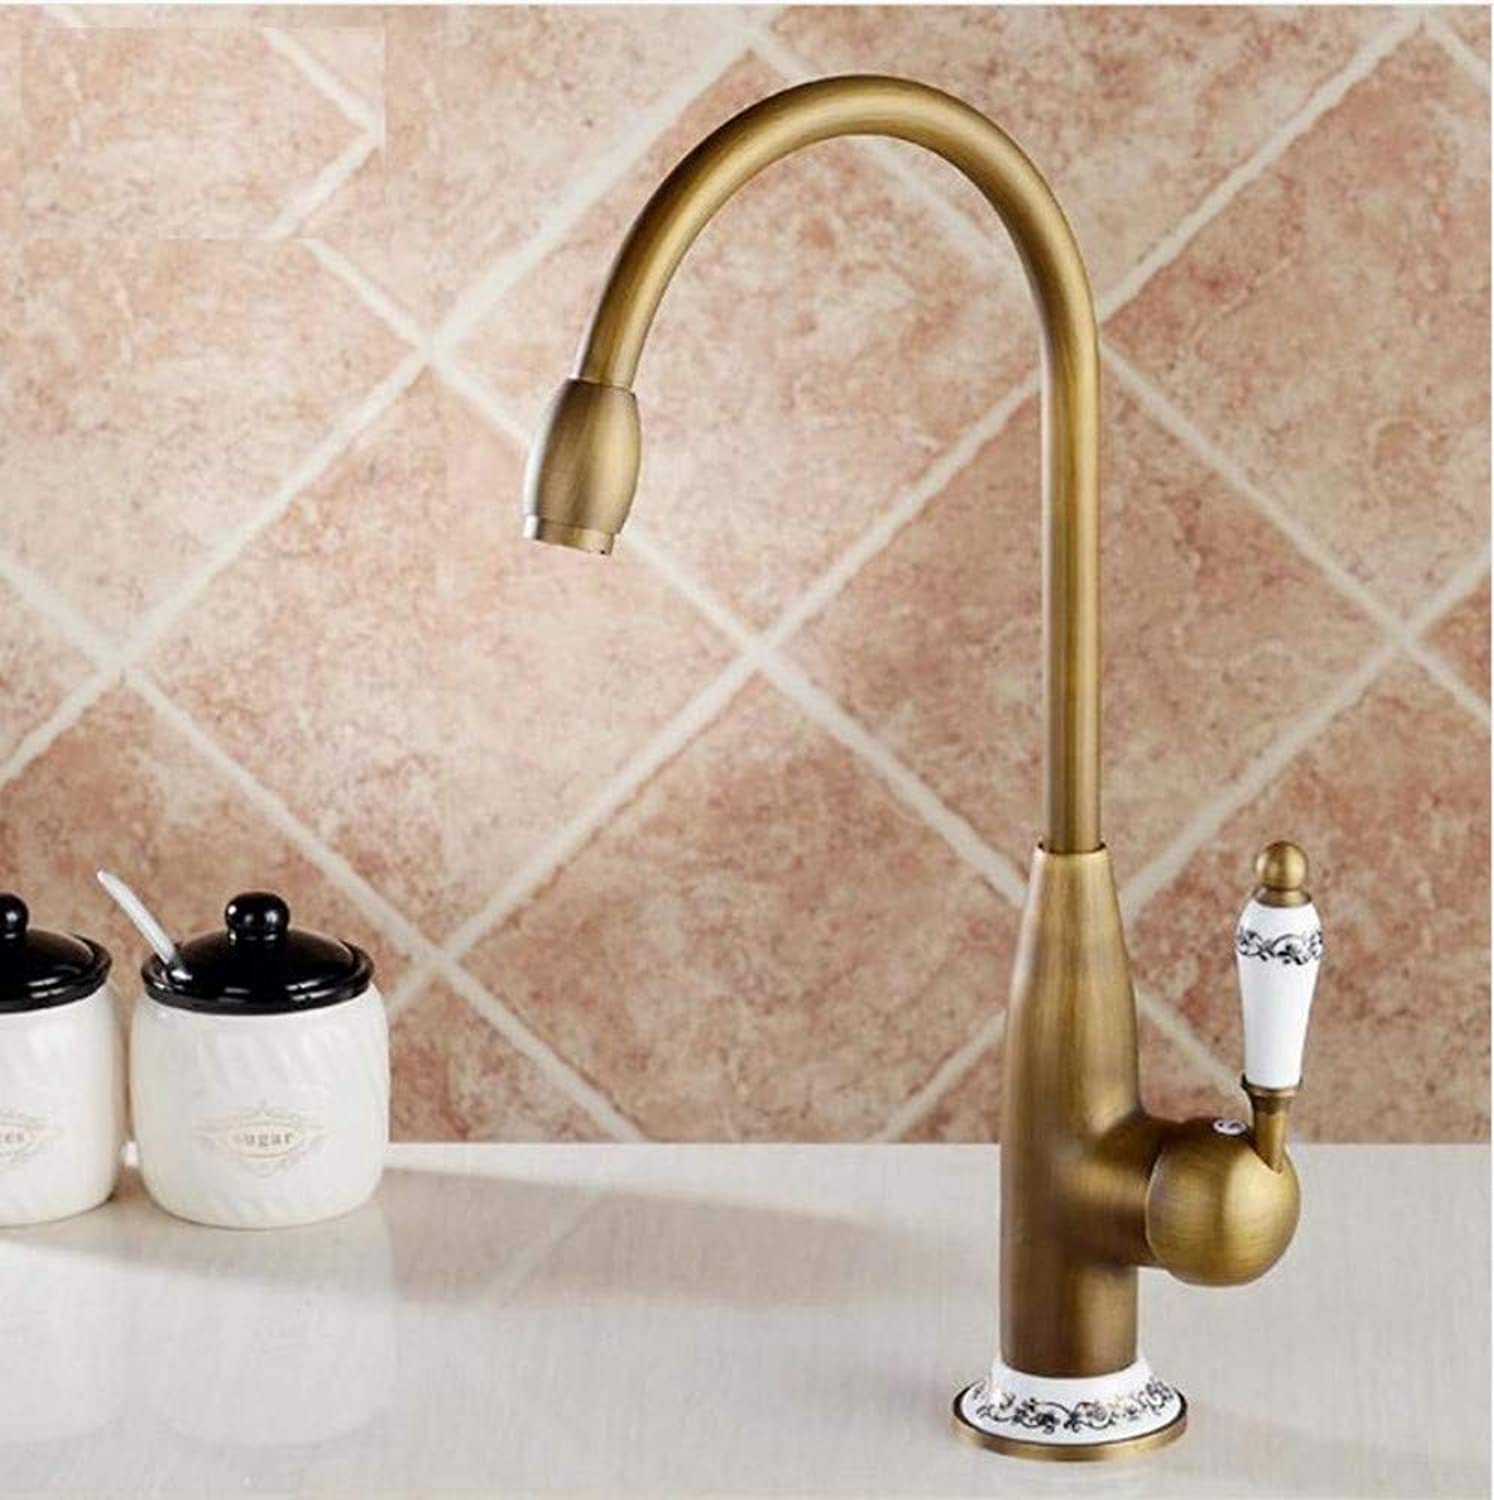 Dwthh Kitchen Faucets Antique Bronze Faucet for Kitchen Mixer Tap with Ceramic Cold and Hot Kitchen Sink Tap Water Mixers